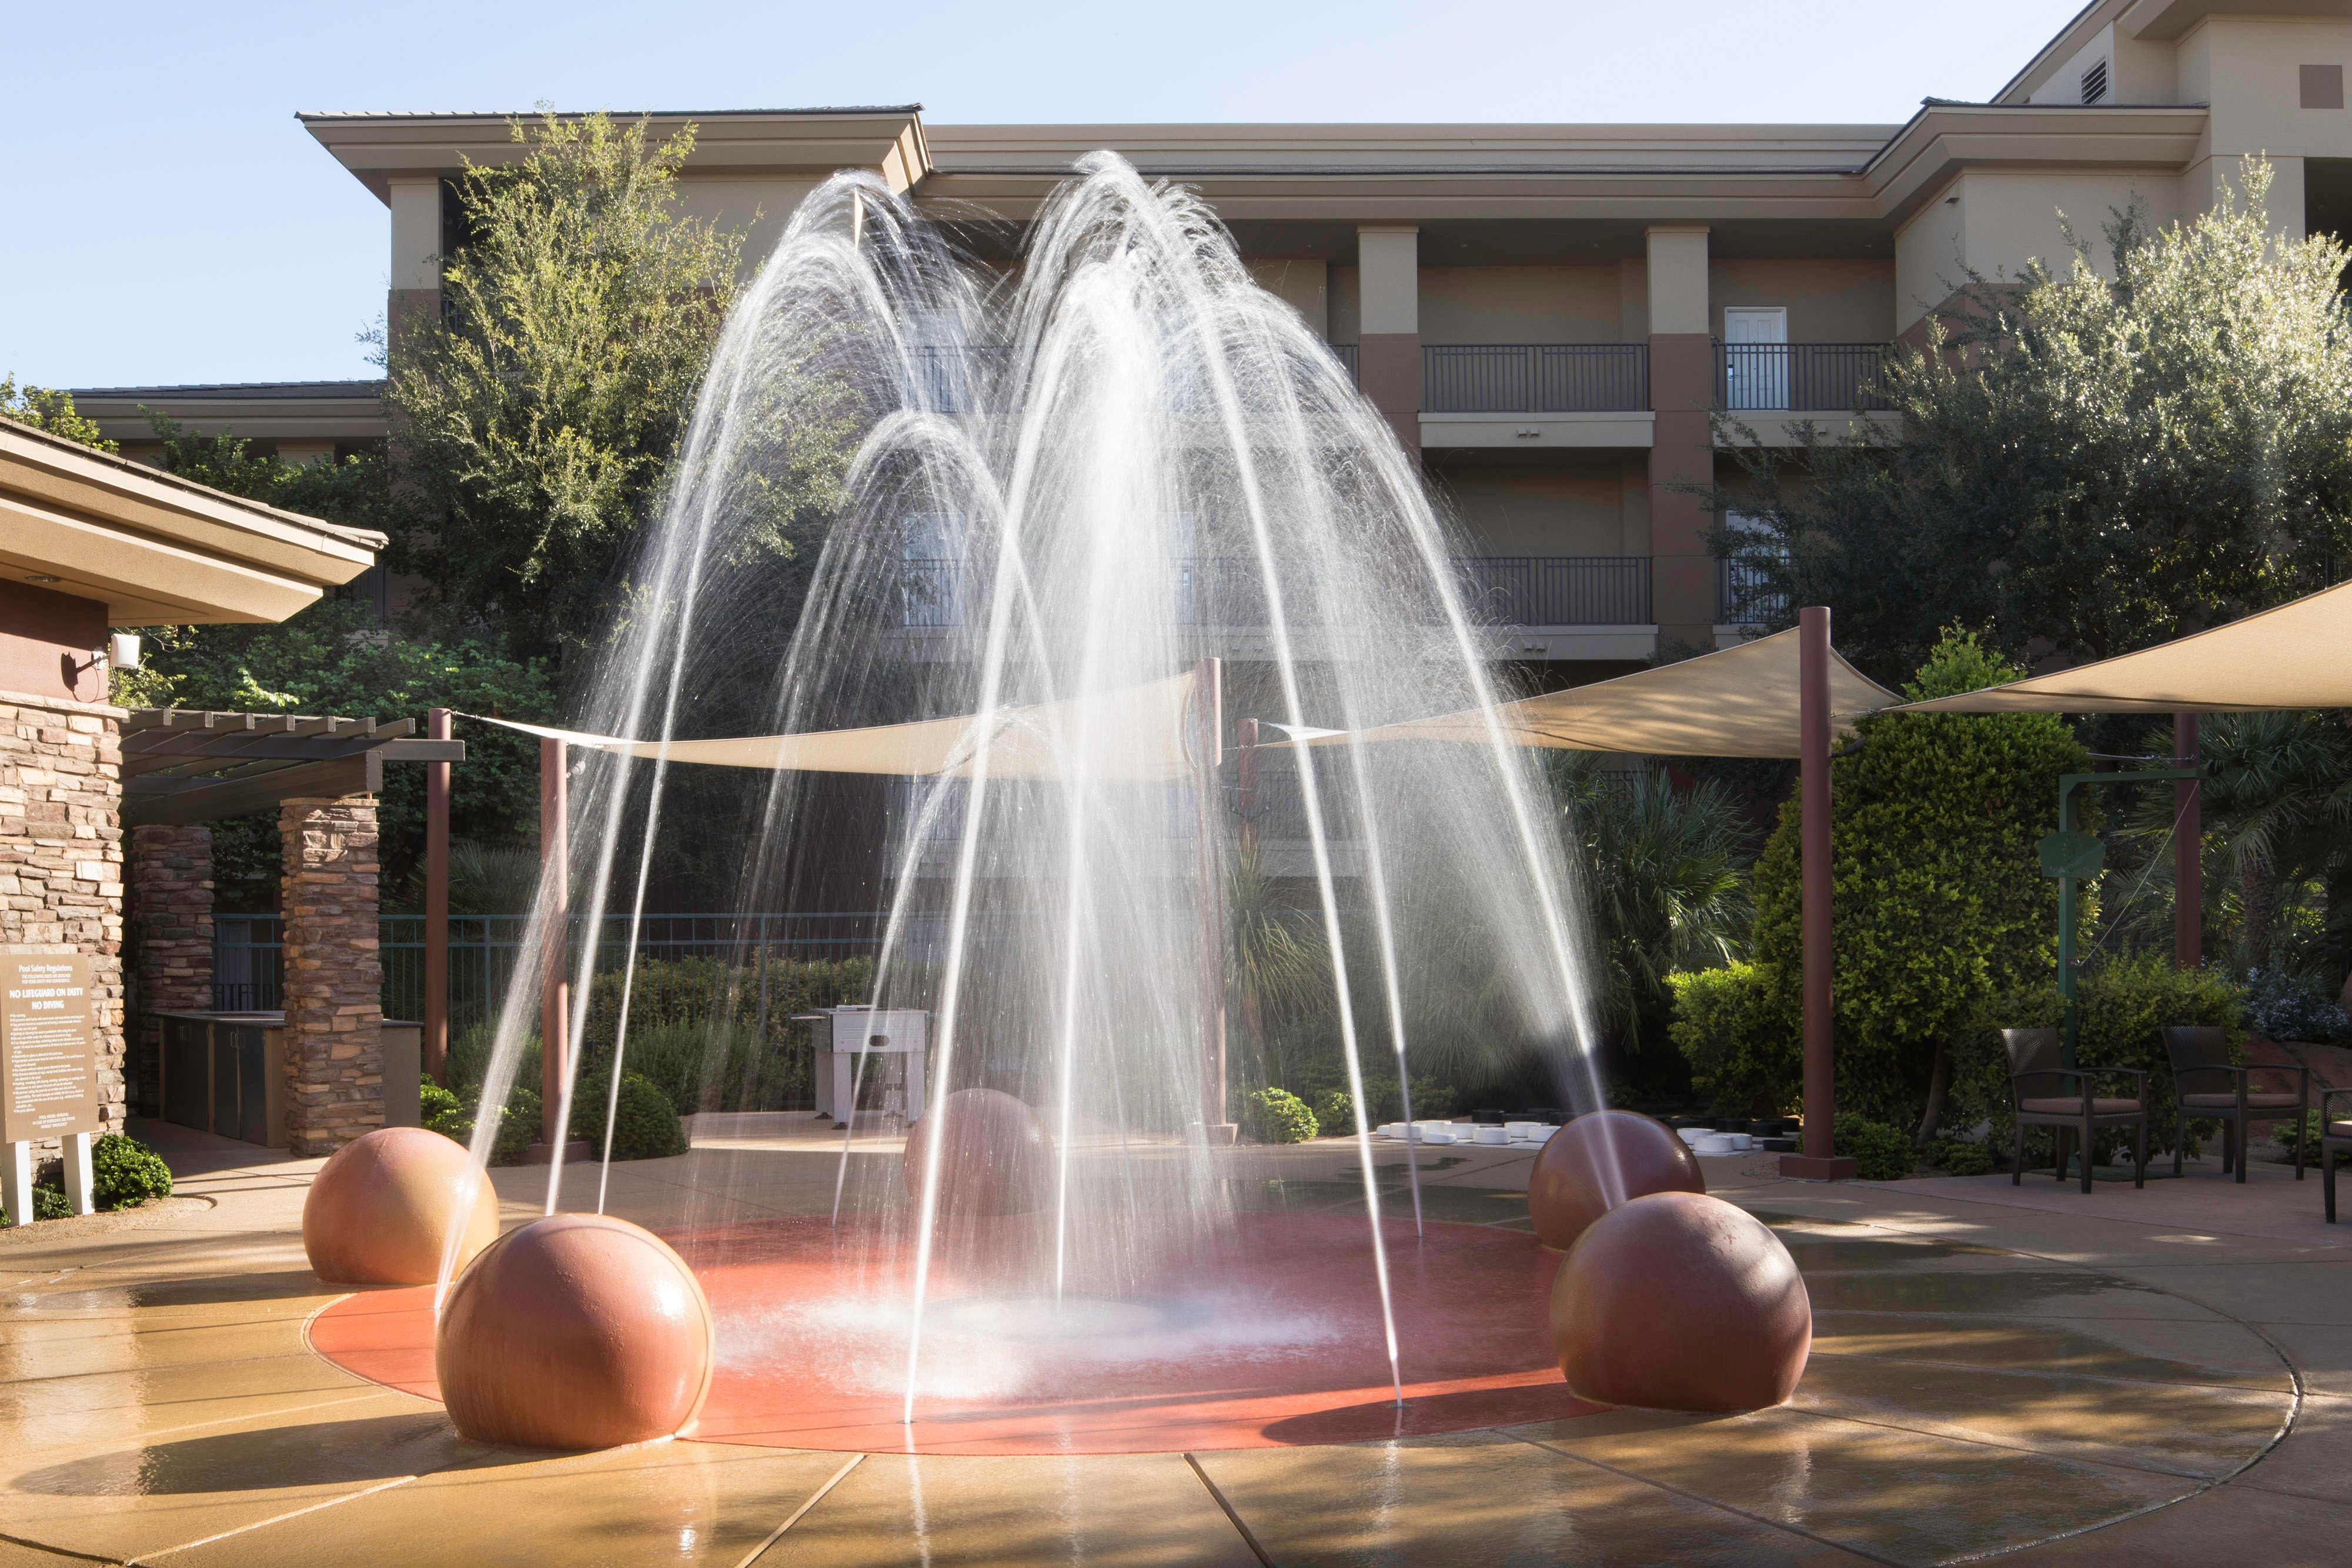 Interactive Water Play Area